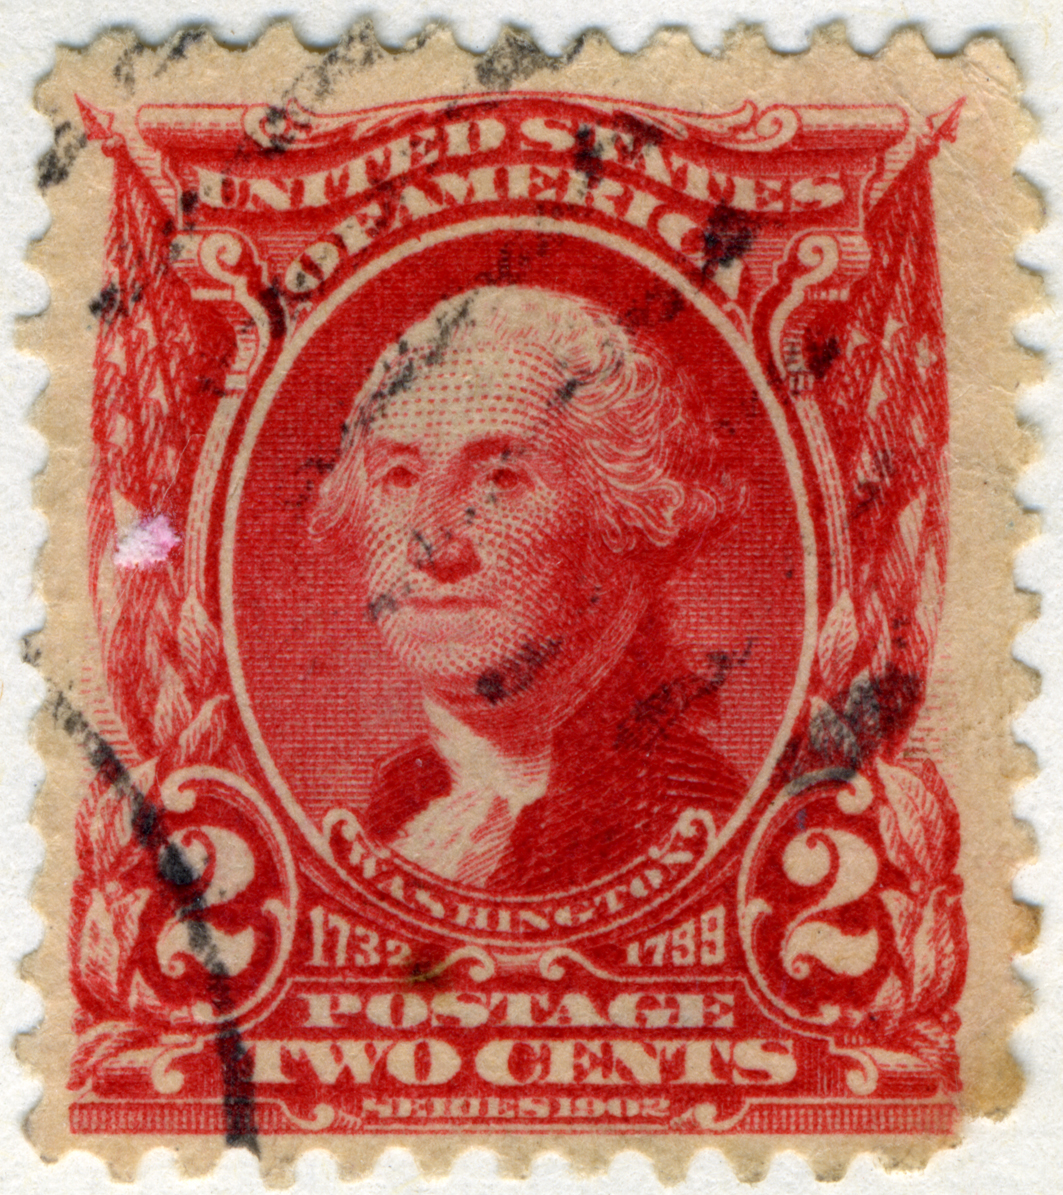 FileUS Stamp 1902 2c Washington